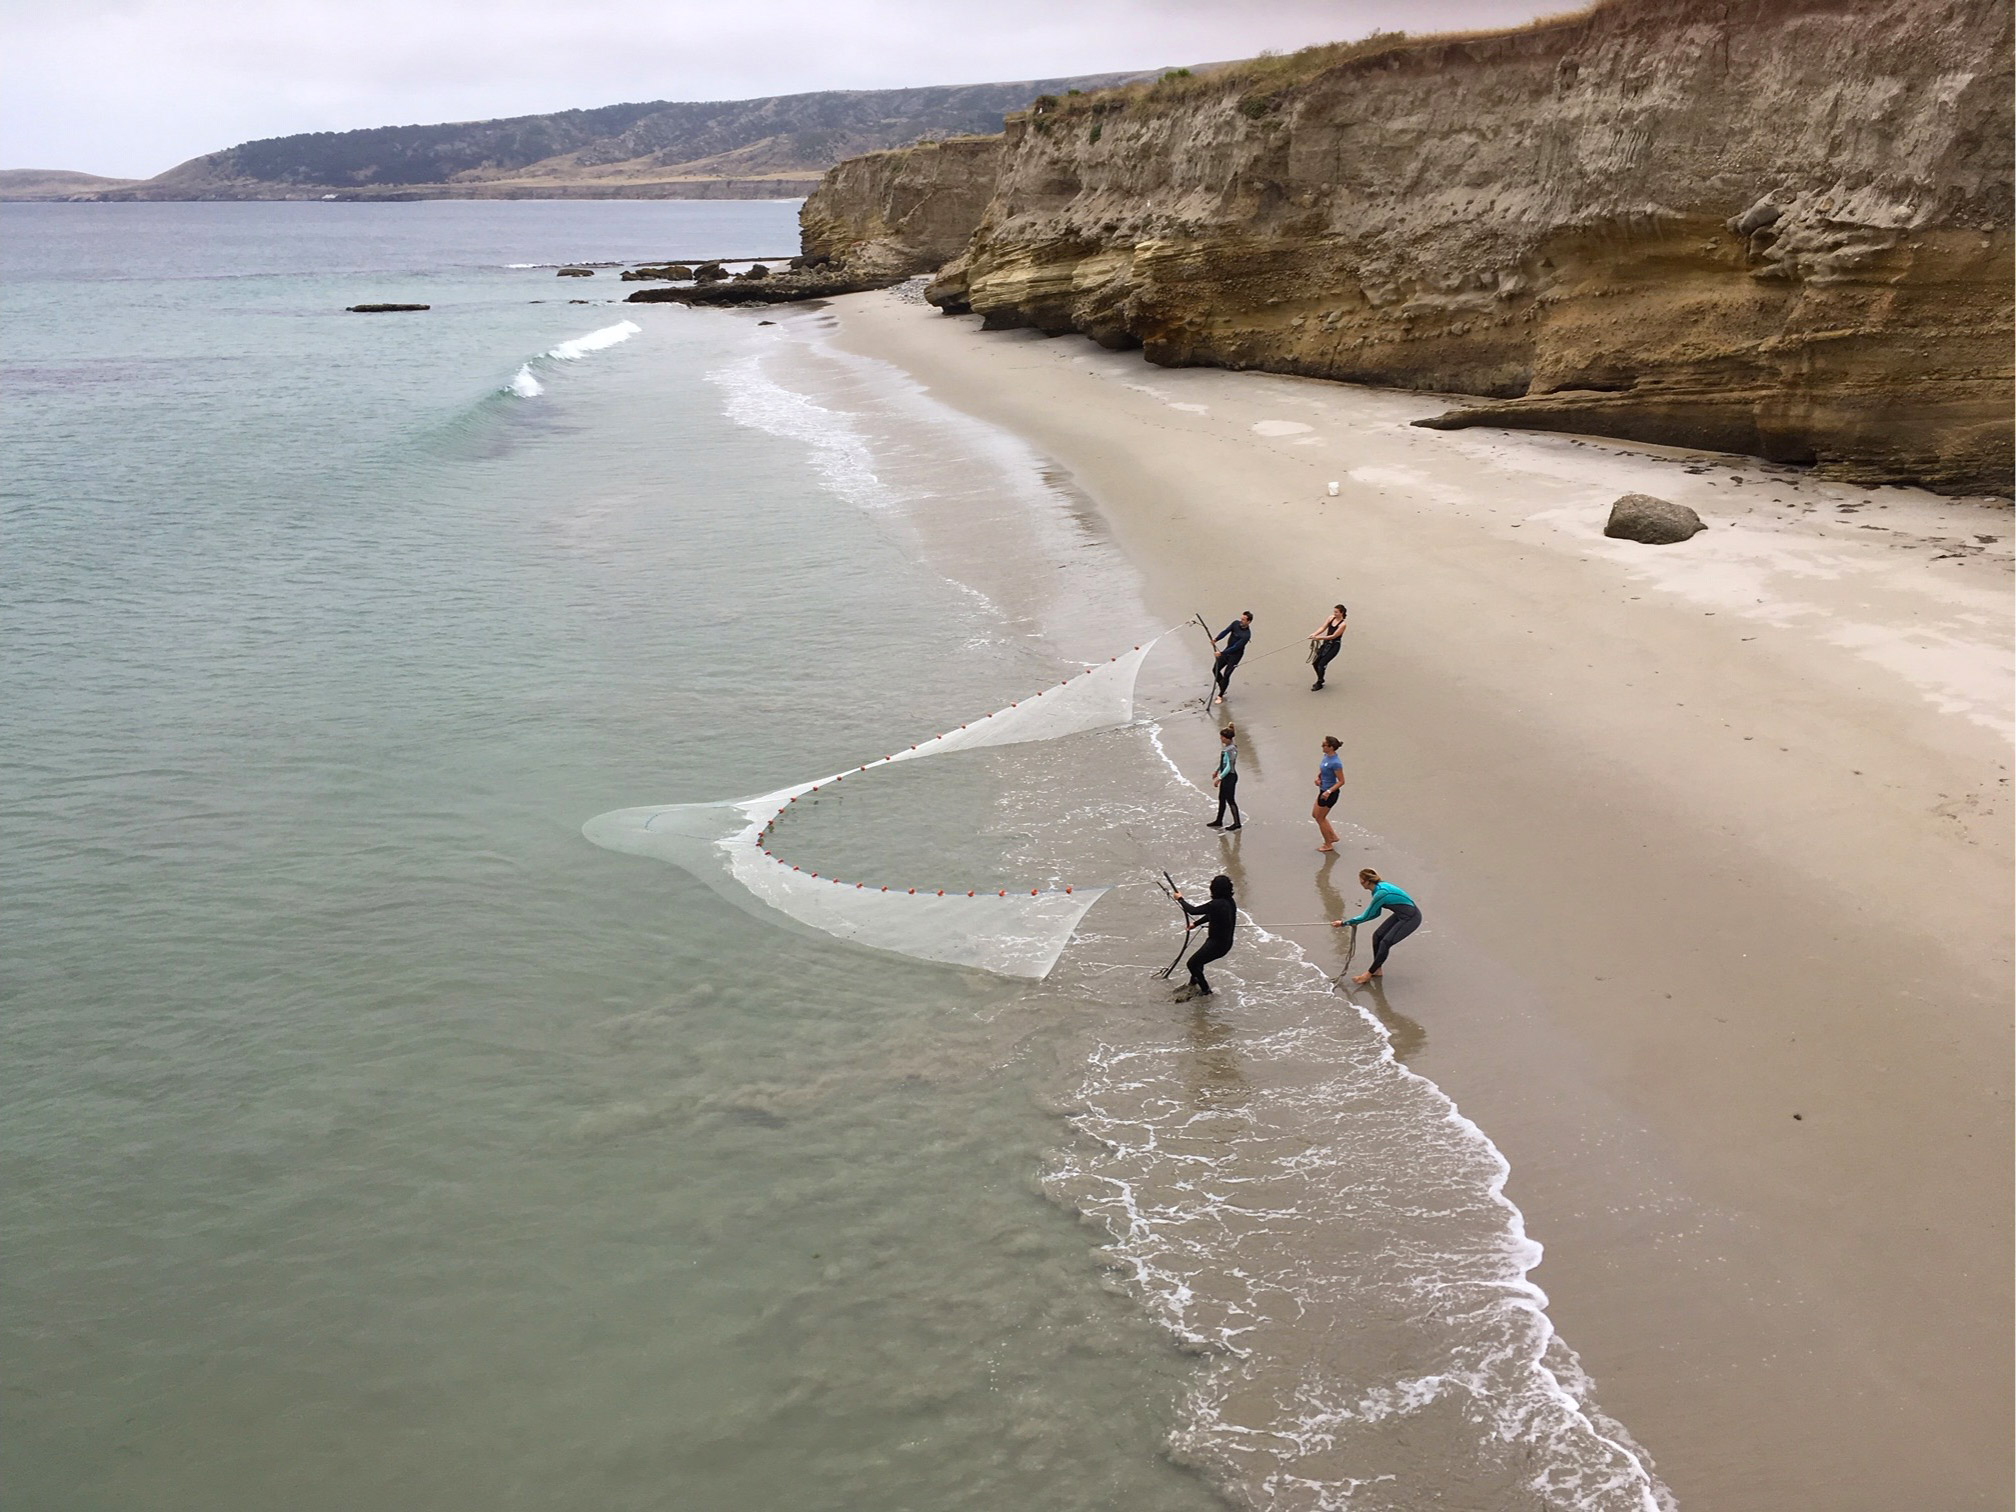 Student researchers seining at Surf Beach